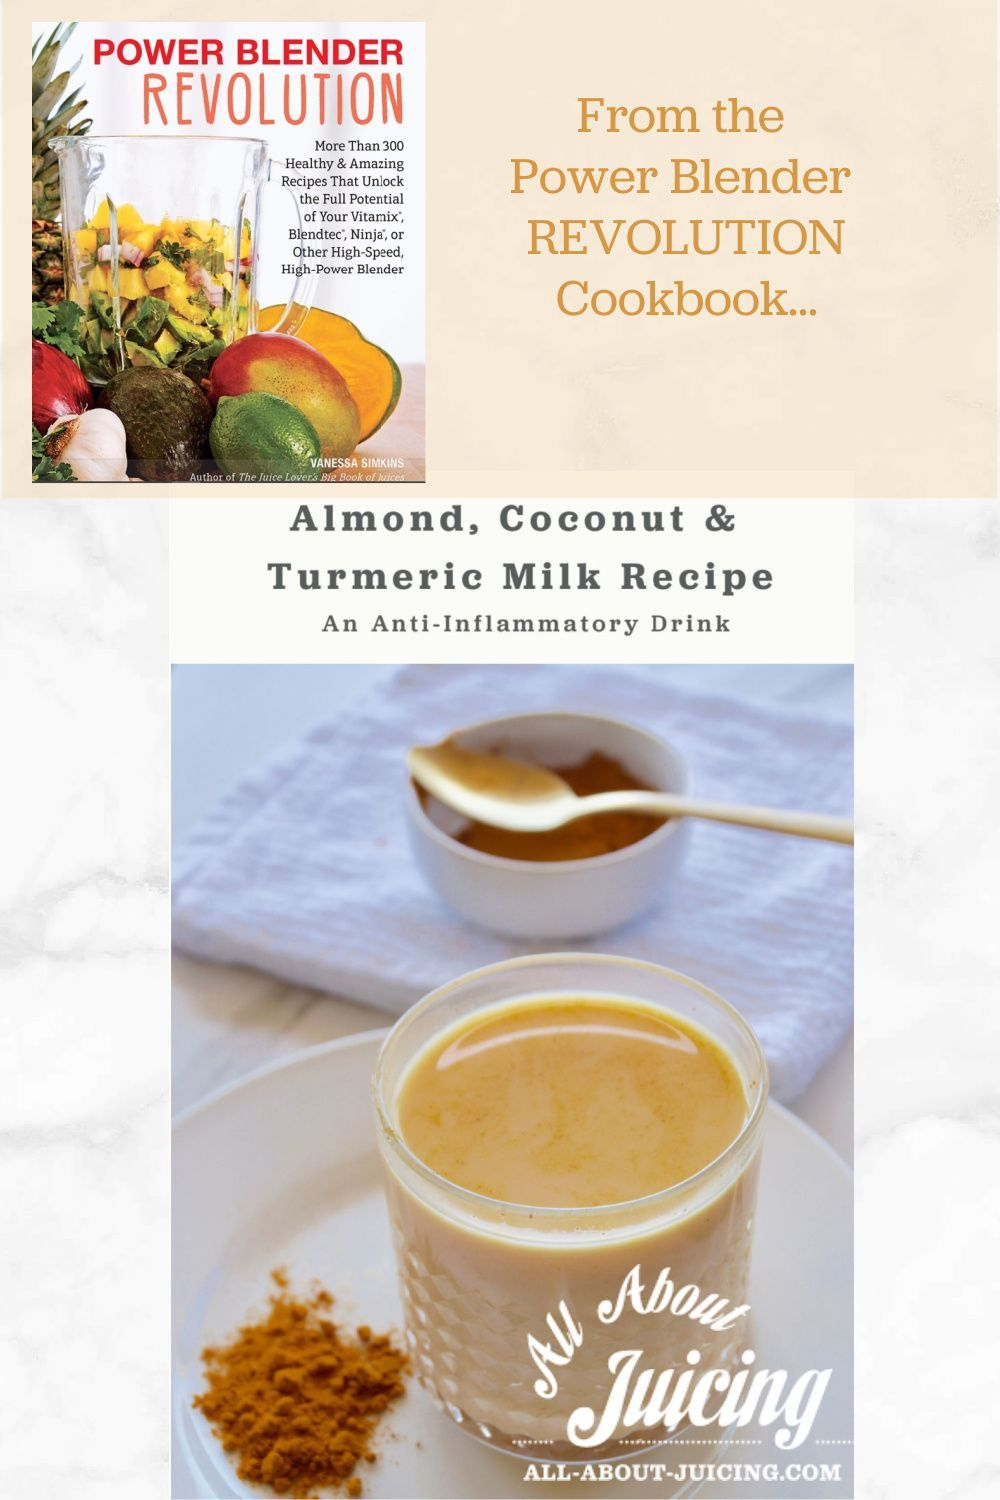 Almond Coconut Turmeric Milk Recipe To Fight Inflammation In 2020 Turmeric Milk Recipe Best Nutrition Food Healthy Nutrition Foods